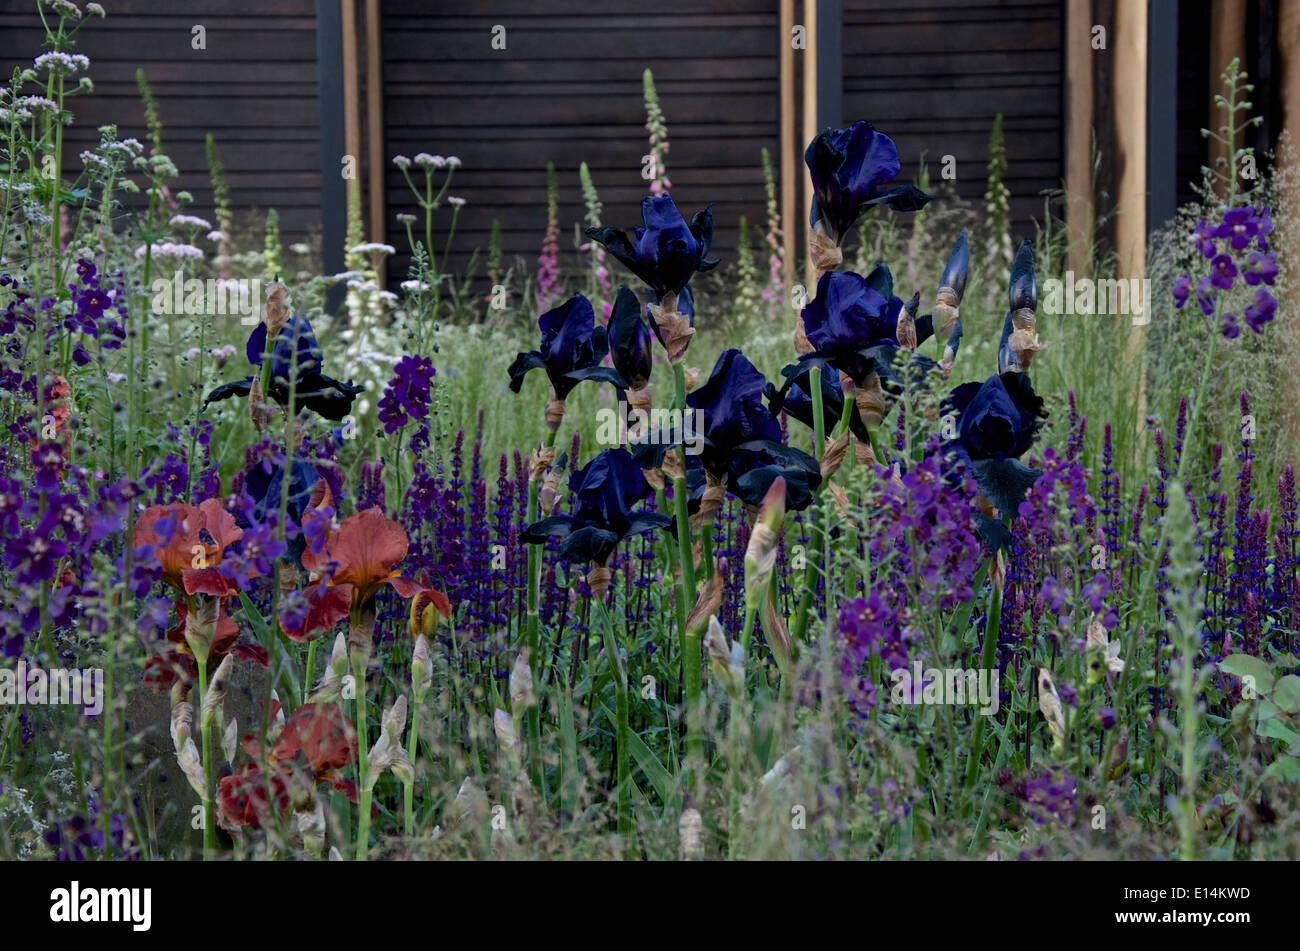 Iris 'Black Swan' in the Cloudy Bay Sensory garden at RHS Chelsea Flower Show 2014 Stock Photo